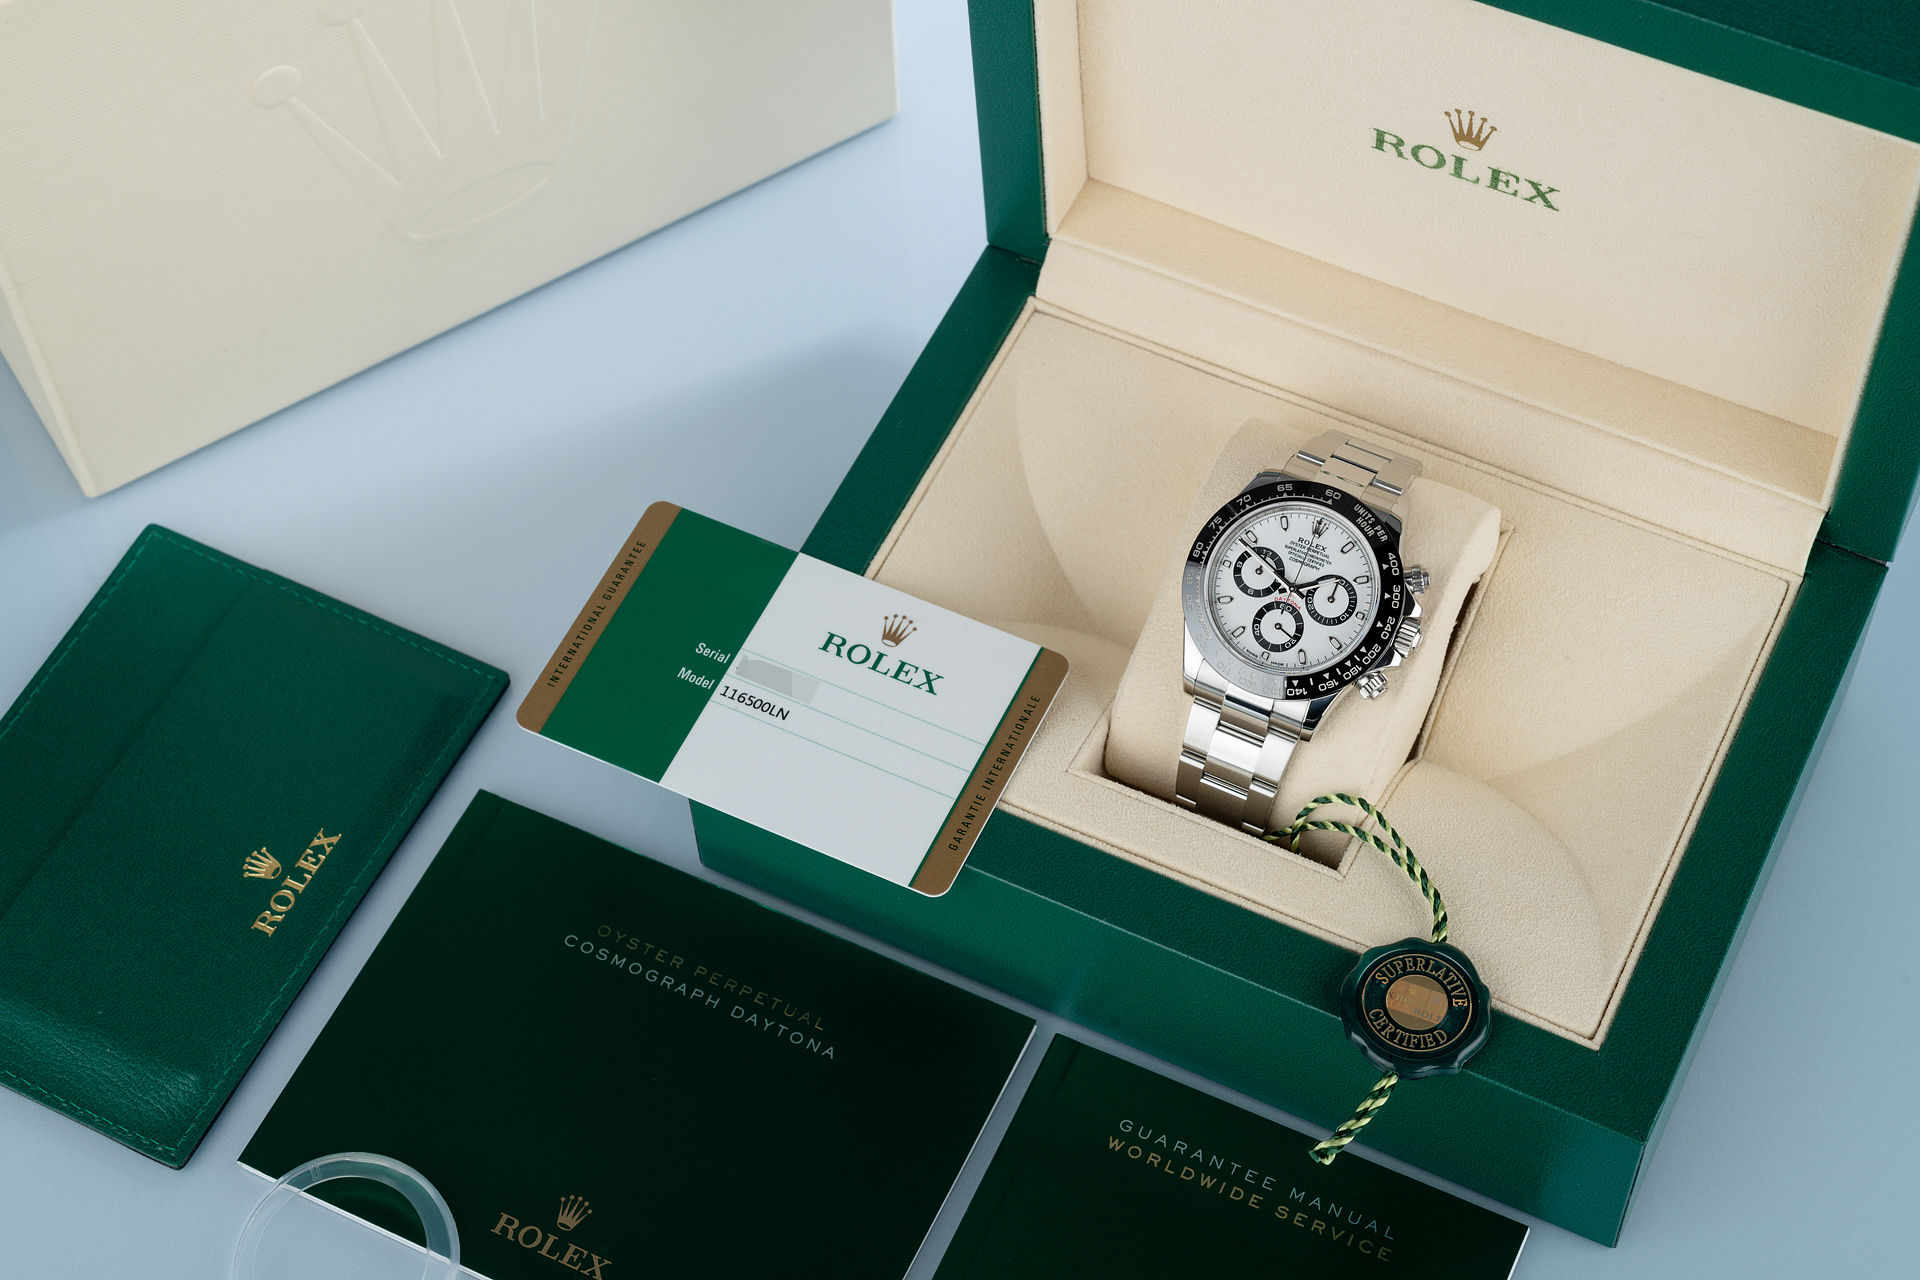 ref 116500LN | Full Set 'Five Year Warranty' | Rolex Cosmograph Daytona